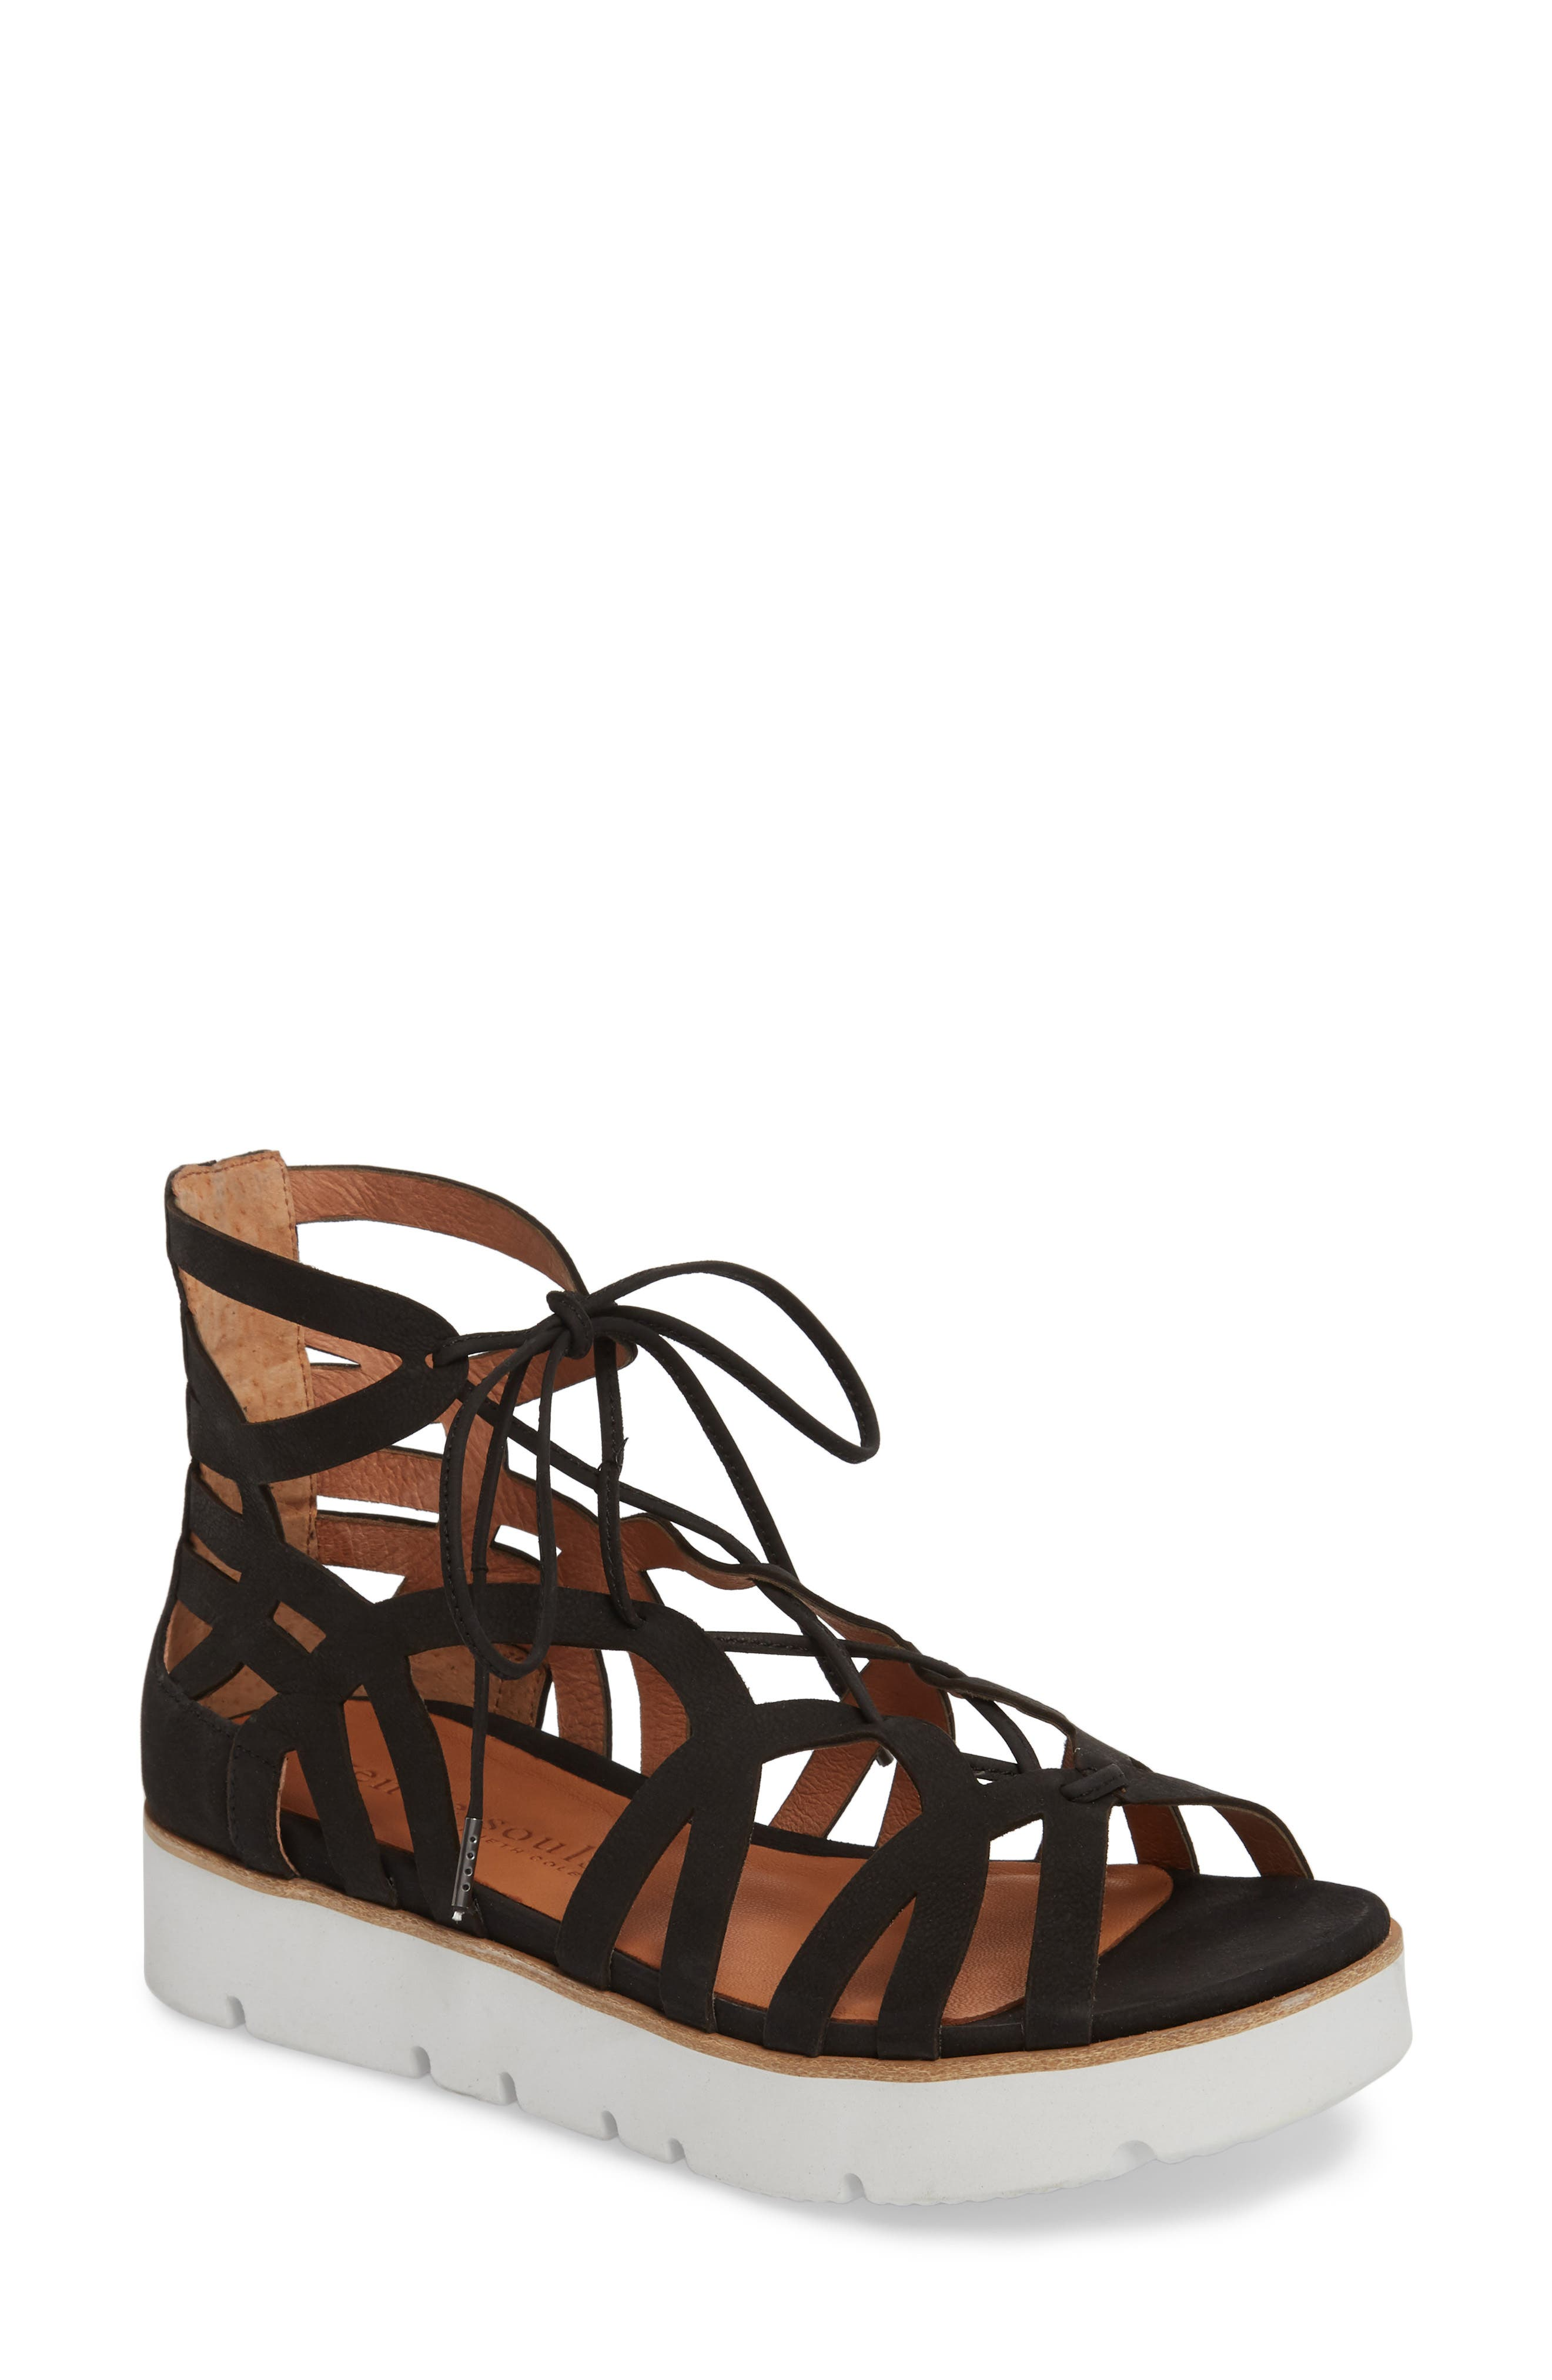 GENTLE SOULS BY KENNETH COLE, Larina Lace-Up Sandal, Main thumbnail 1, color, BLACK NUBUCK